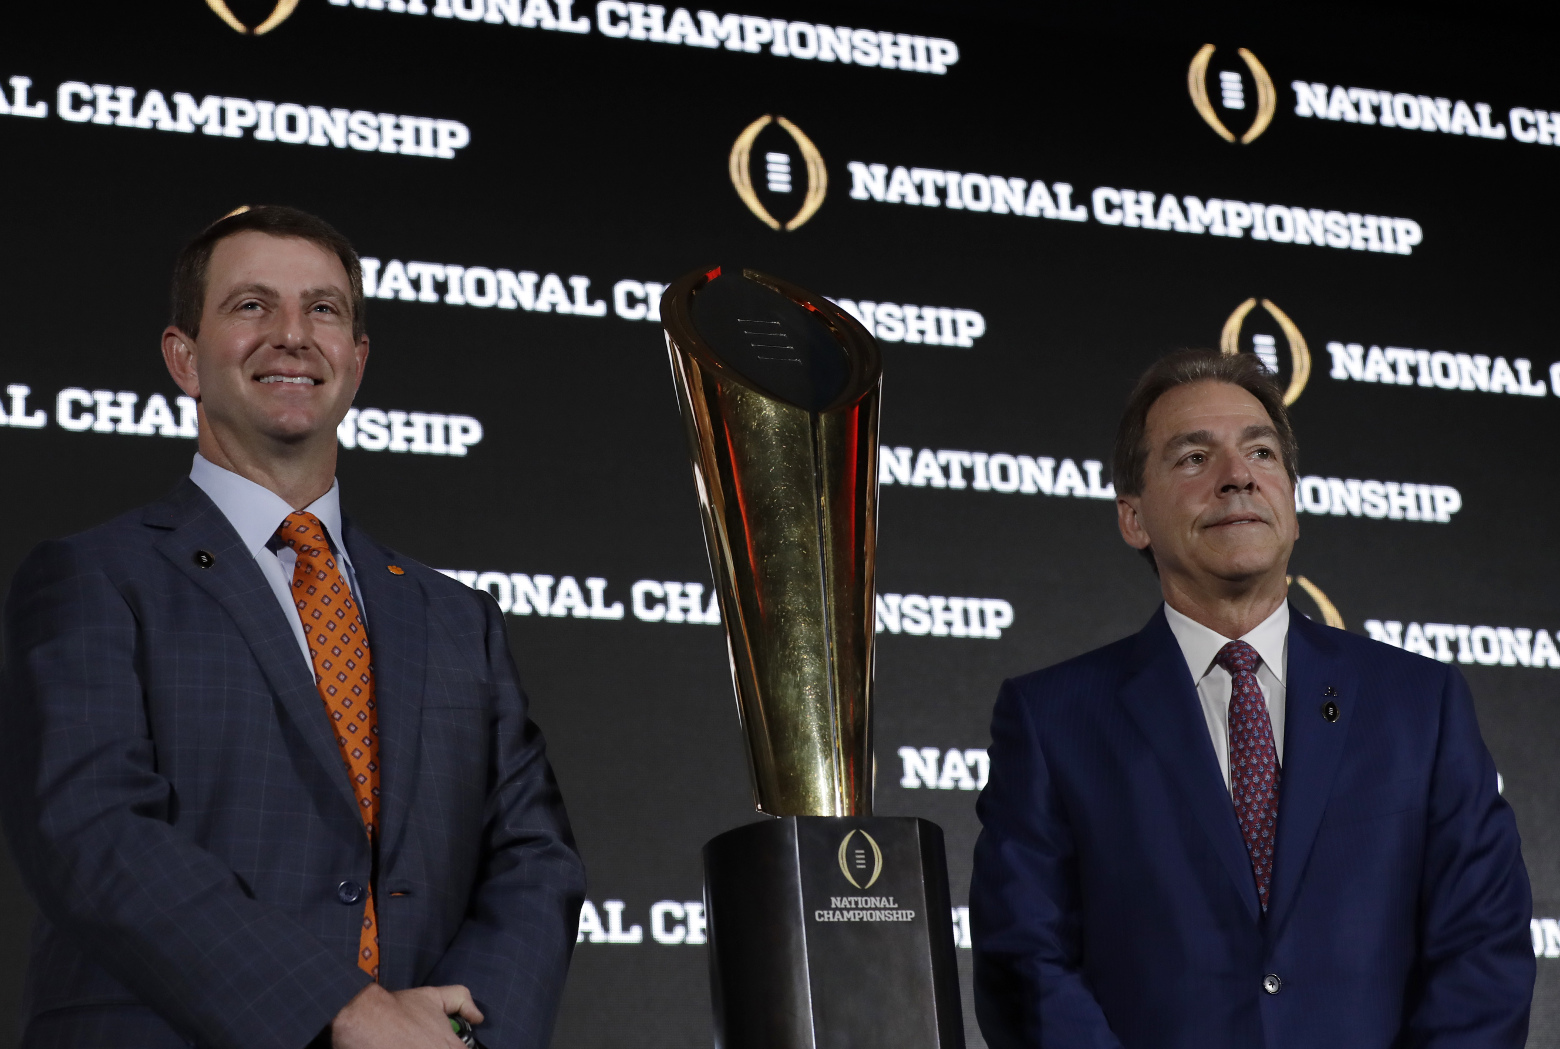 Clemson-Alabama CFP final: Keys to the game